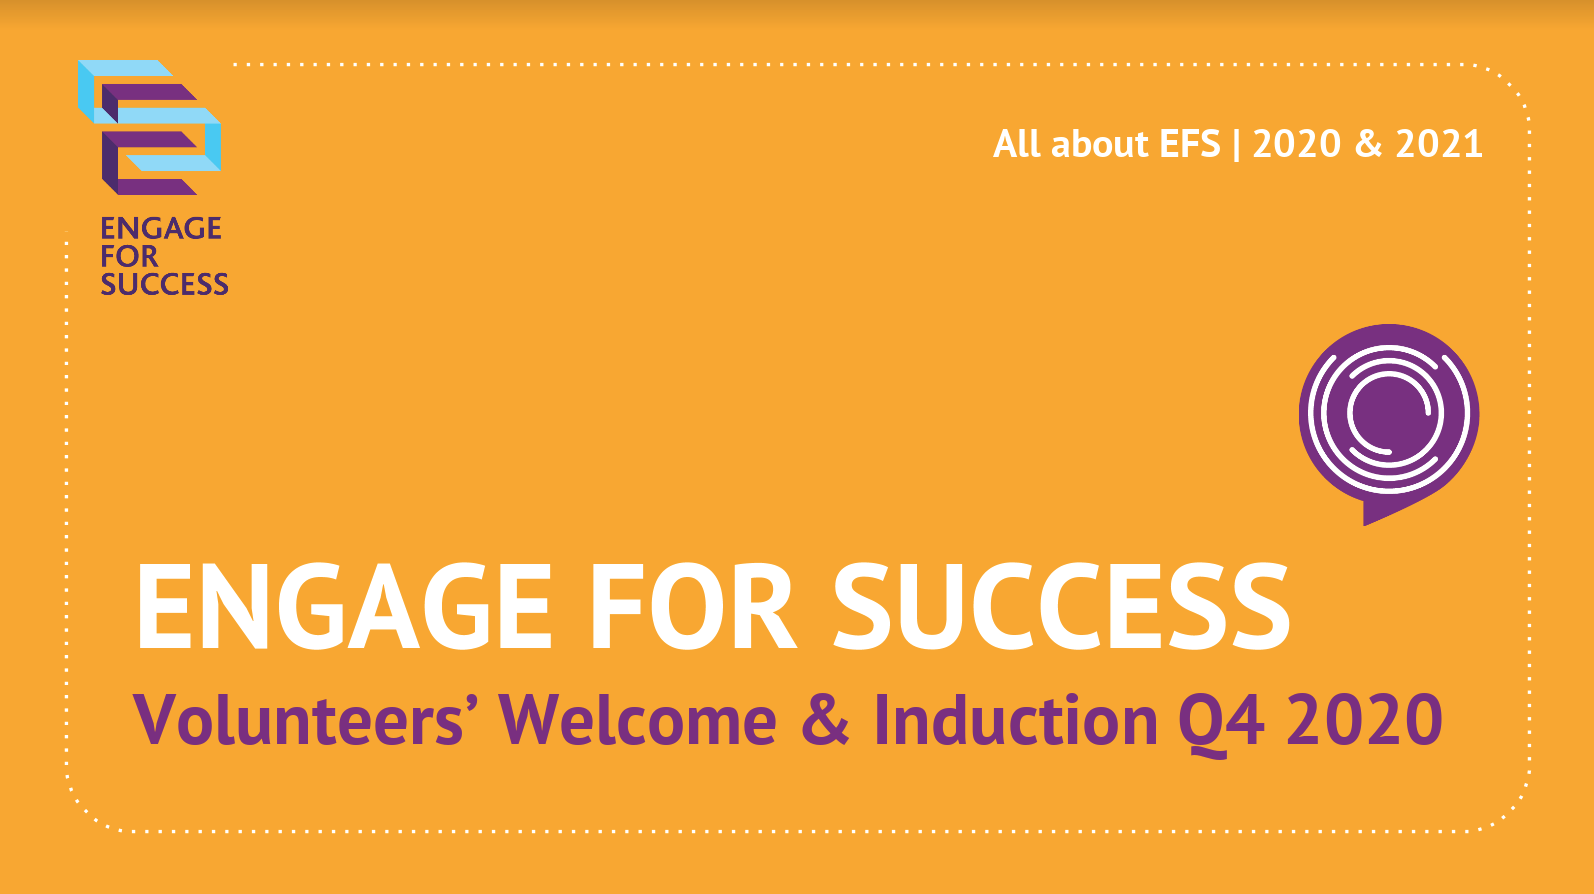 Check out the informative Welcome & Induction Pack